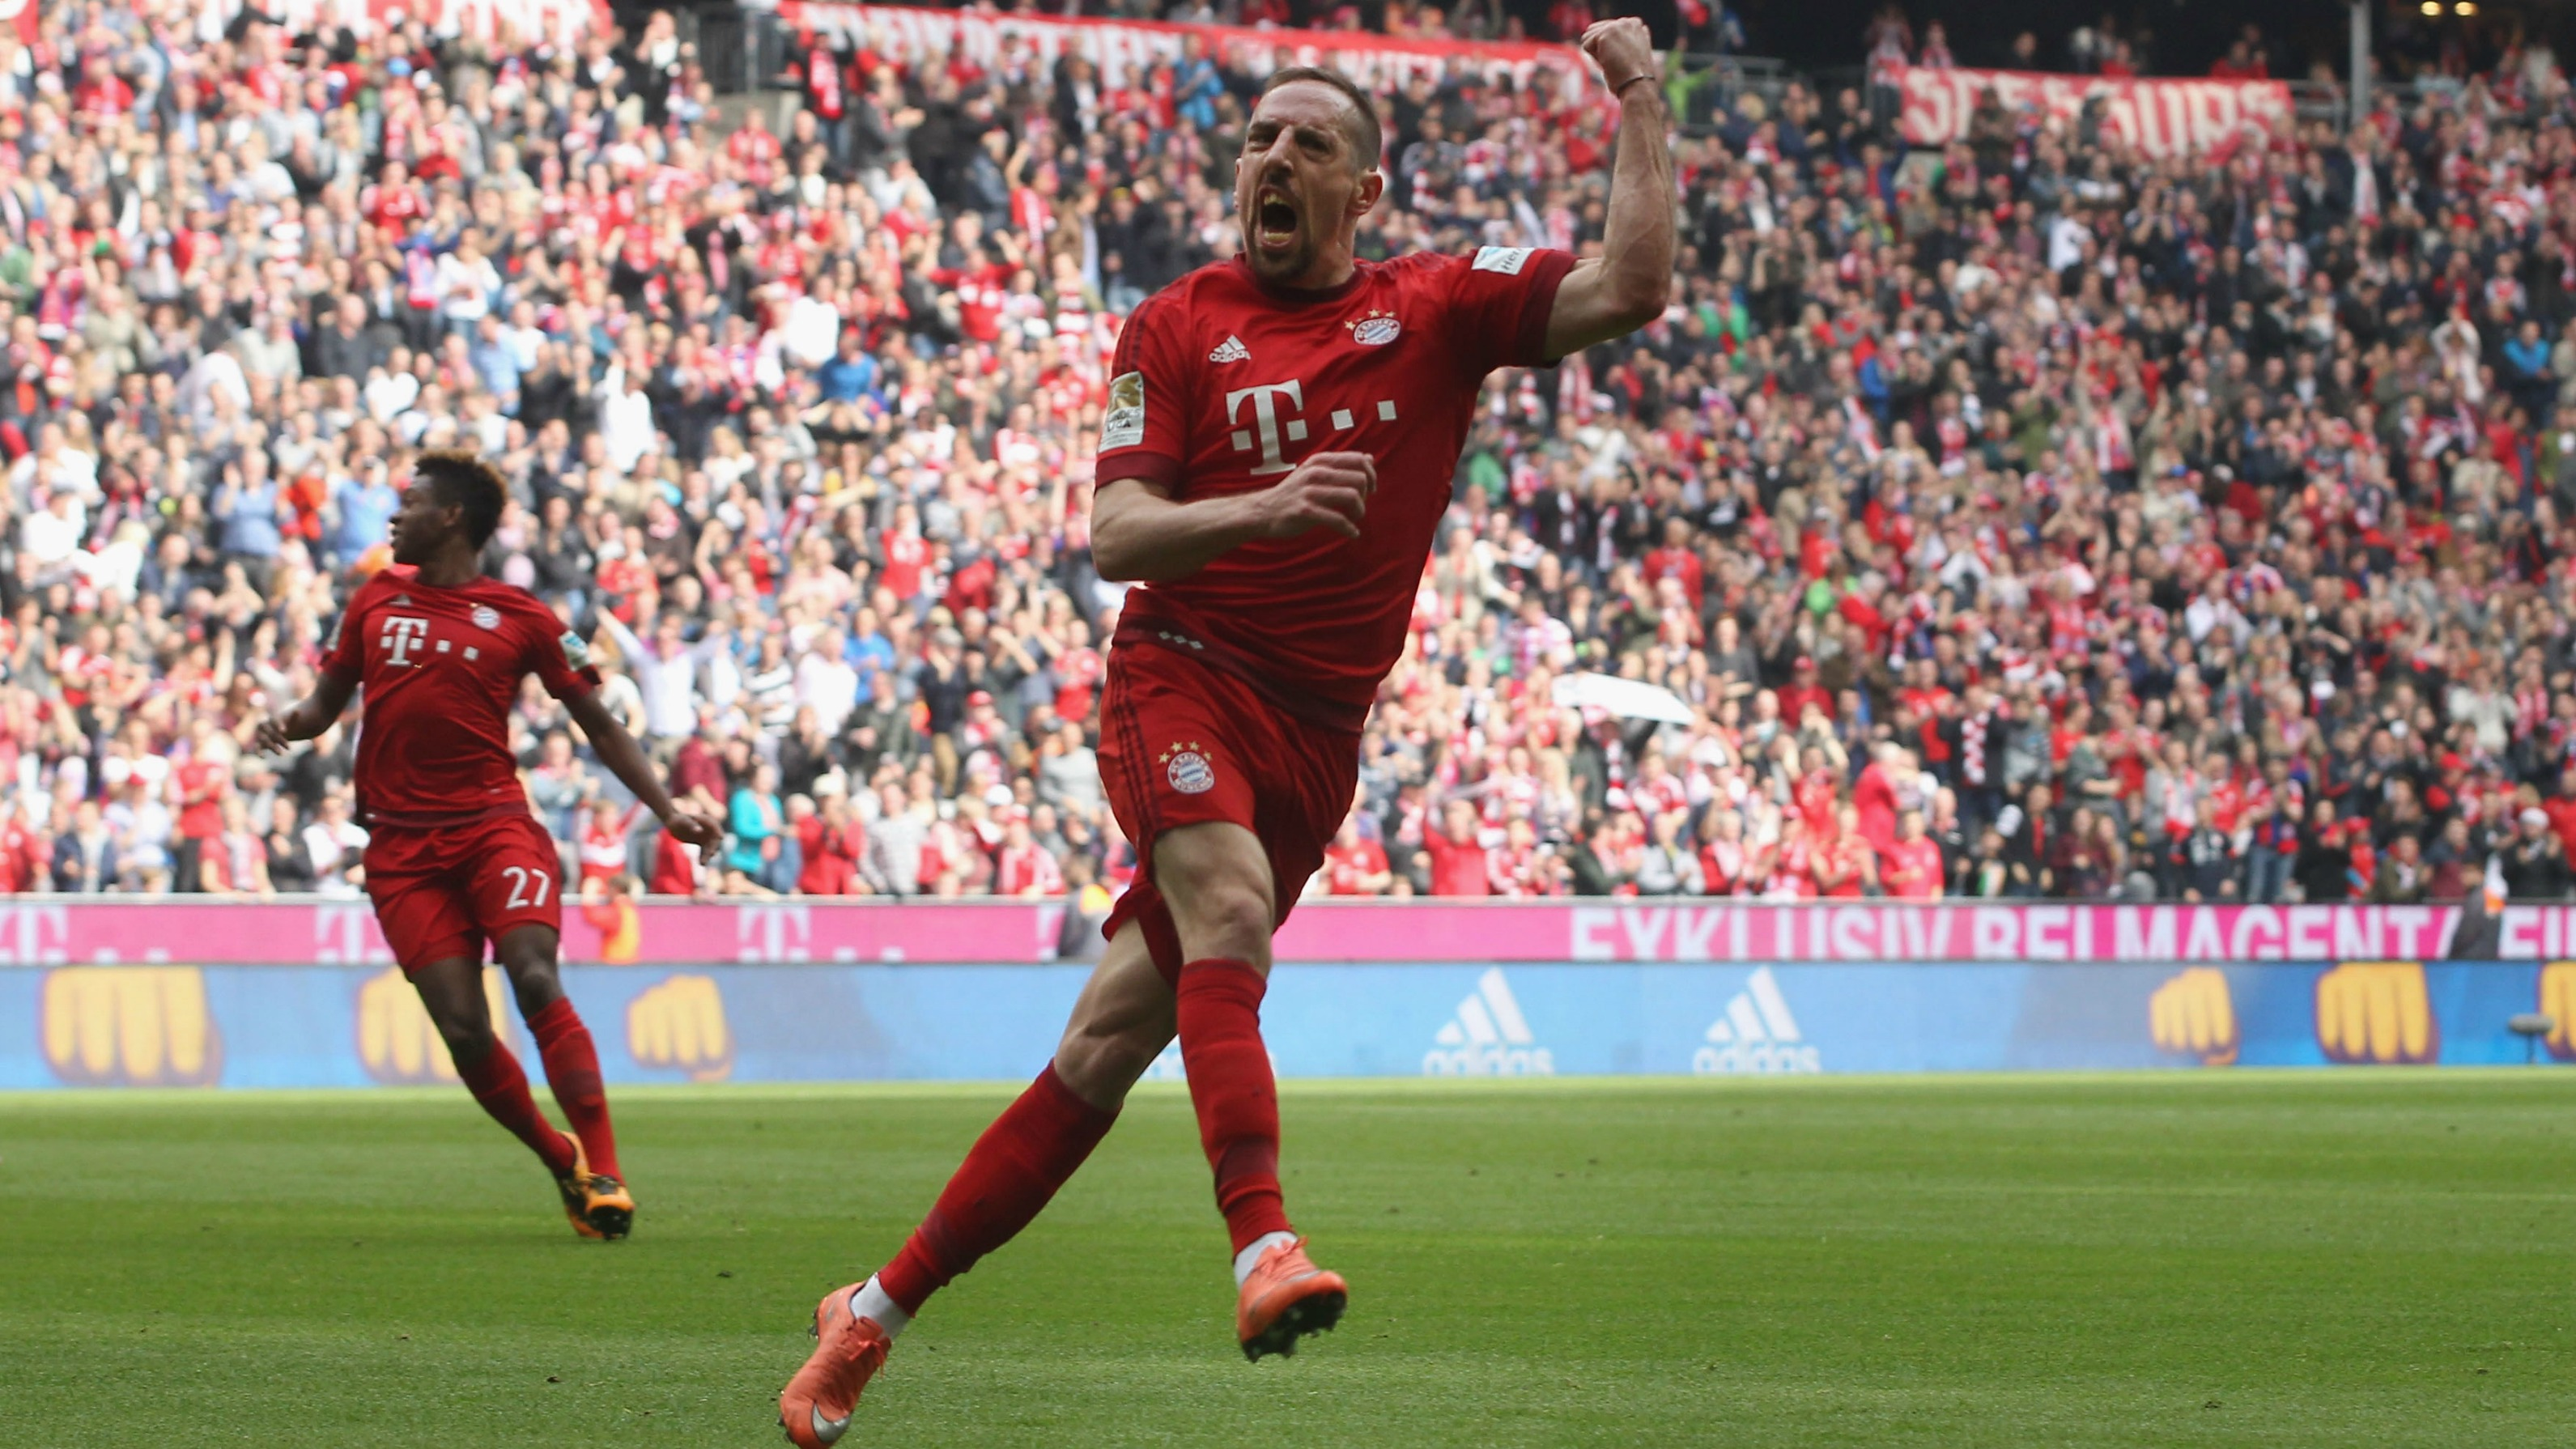 Franck Ribery proves he's not done yet with monster overhead goal